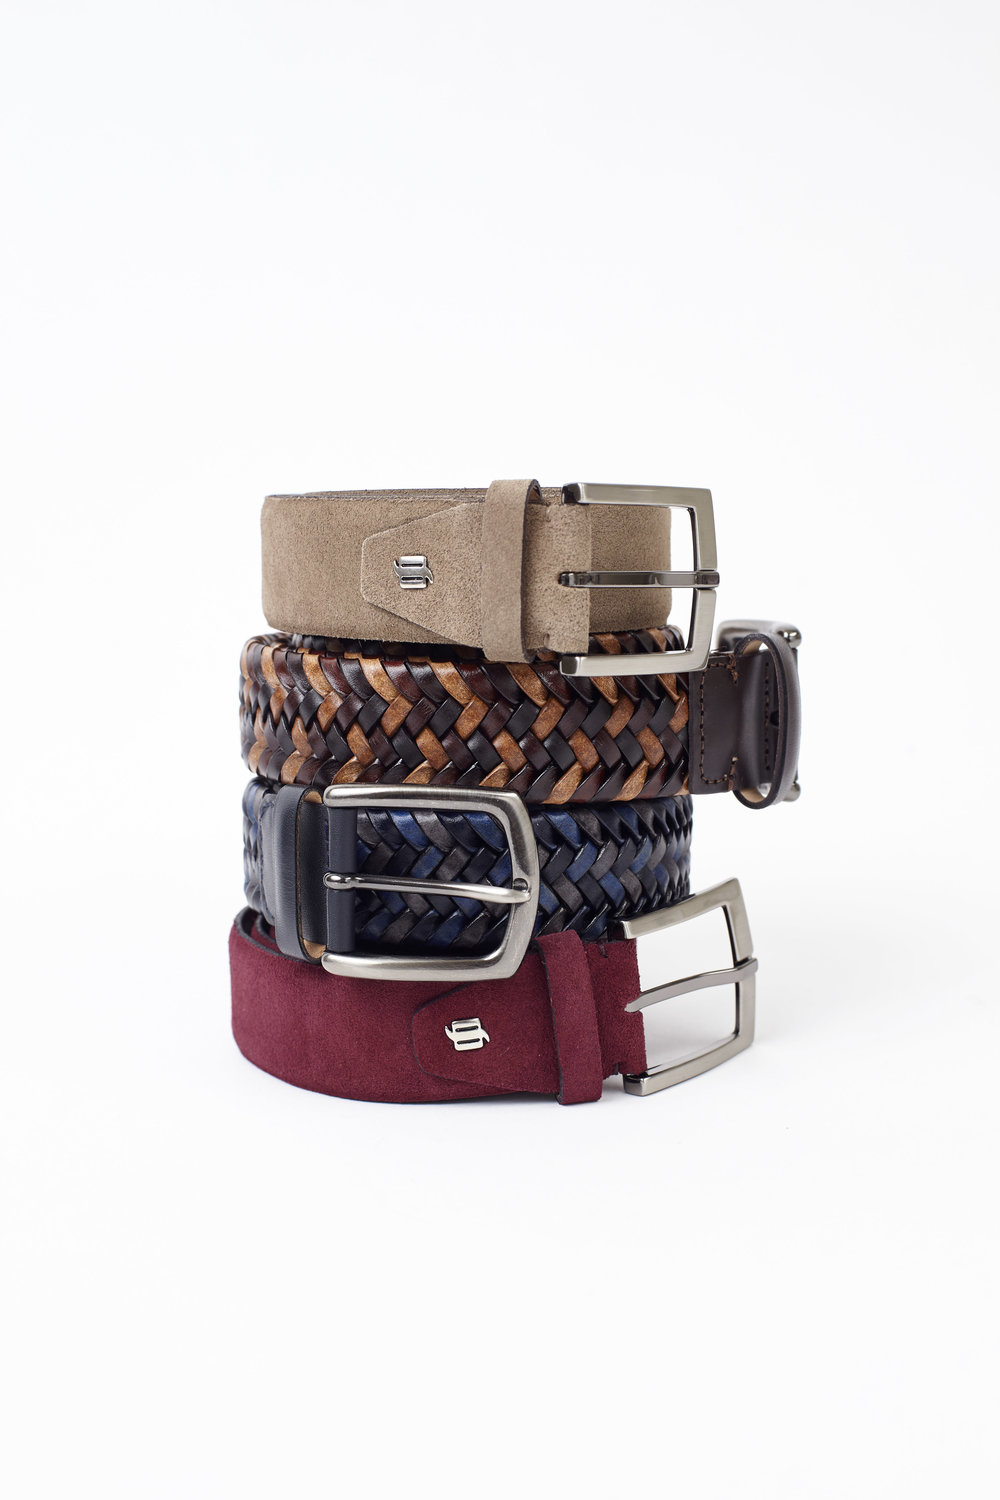 Our selection of belts range from formal traditional tones to casual and colorful.